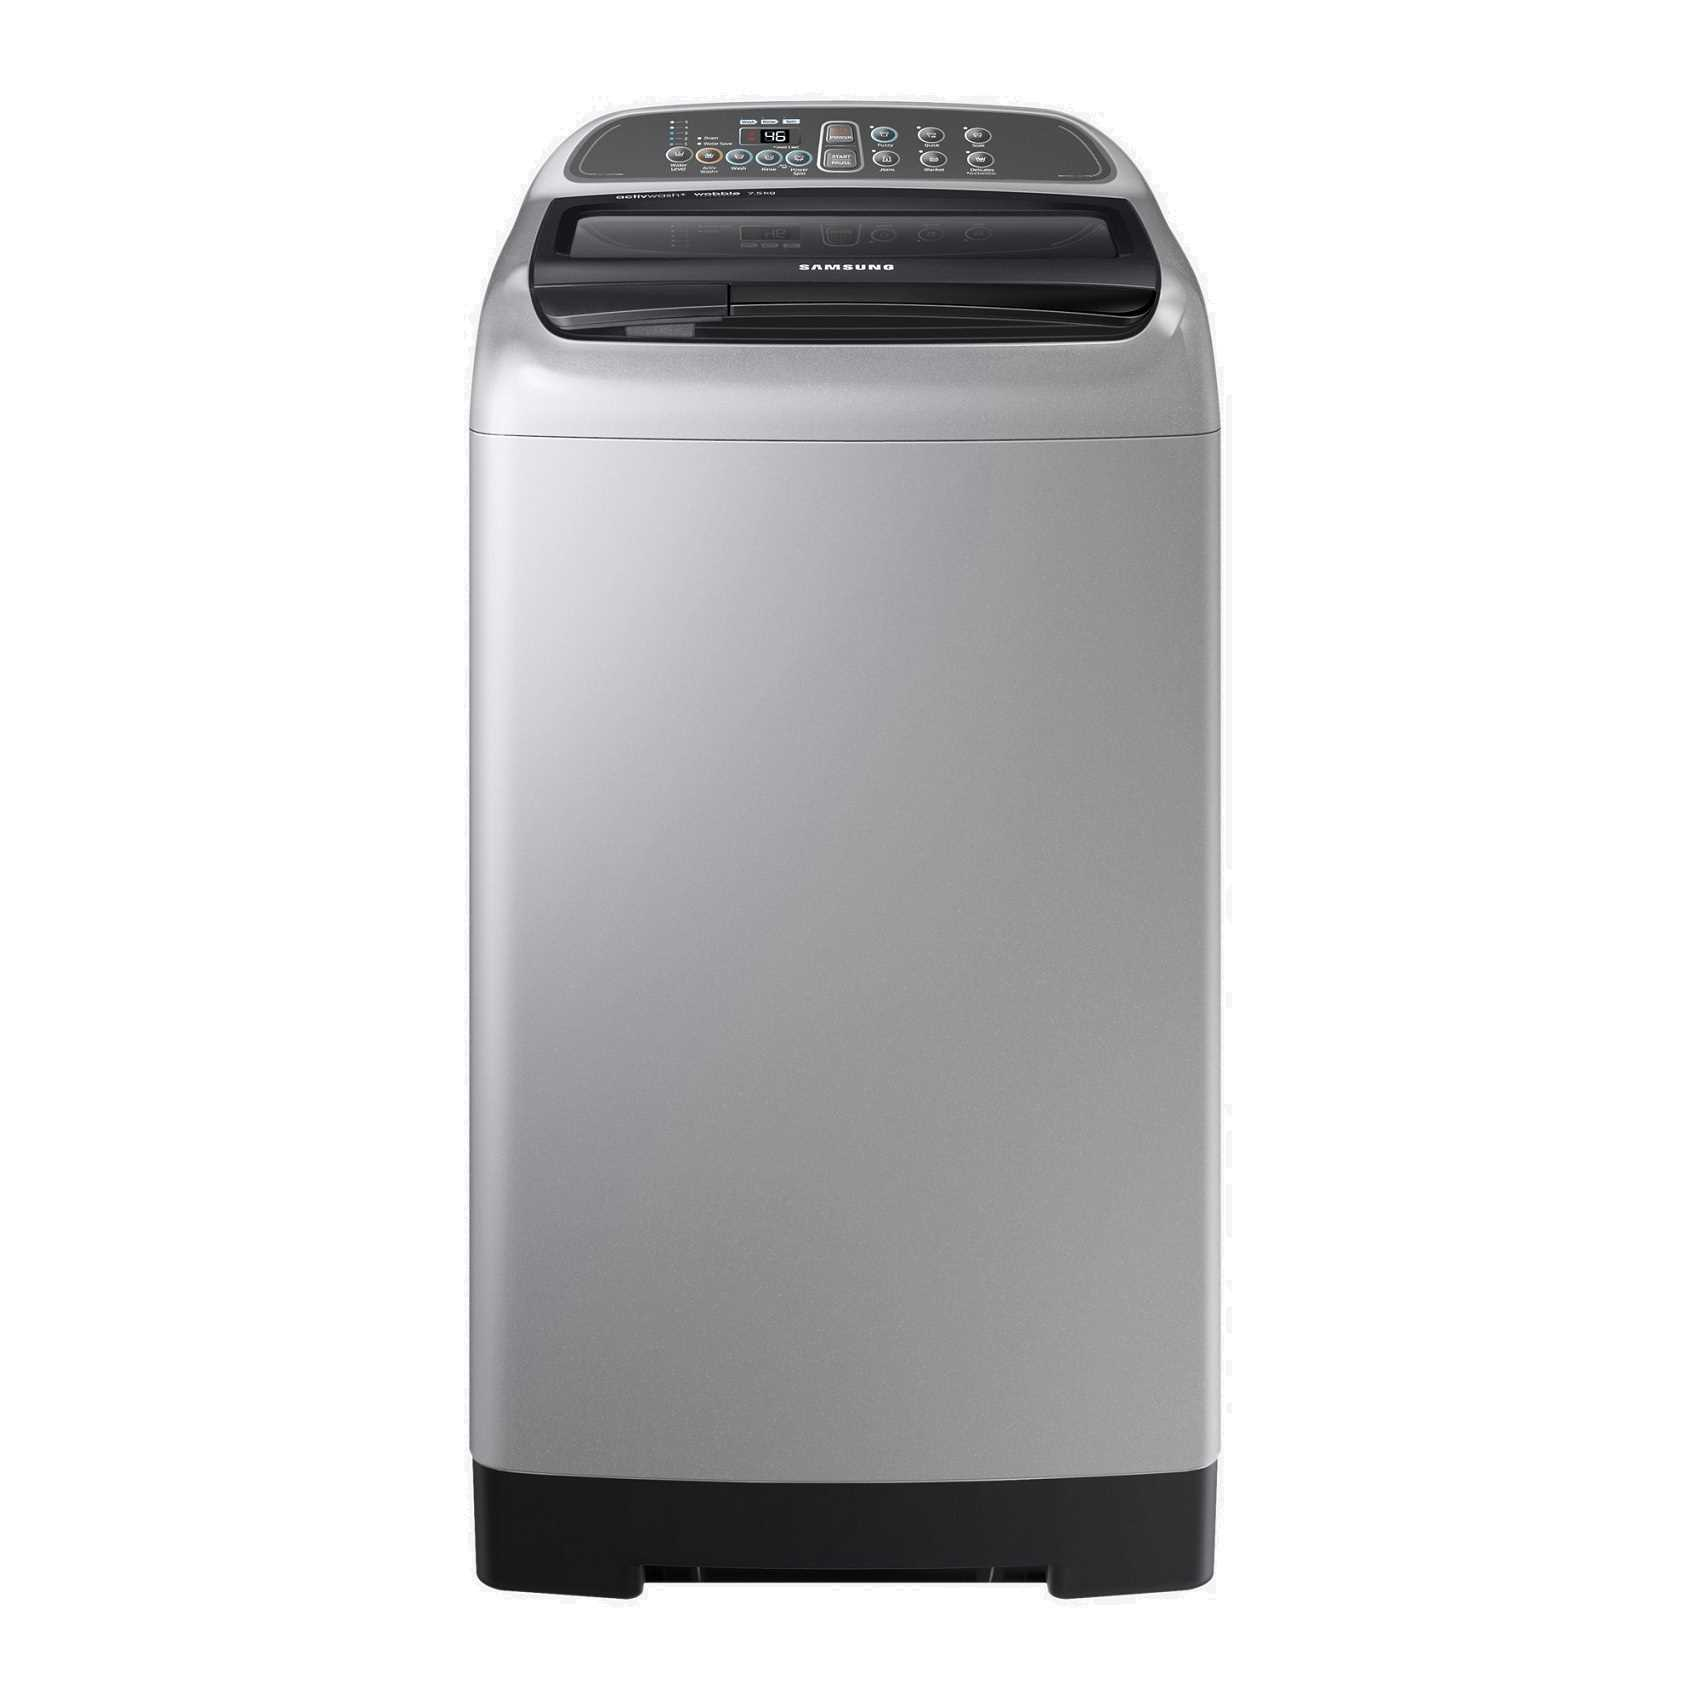 Samsung WA65M4000HA 6.5 Kg Fully Automatic Top Loading Washing Machine